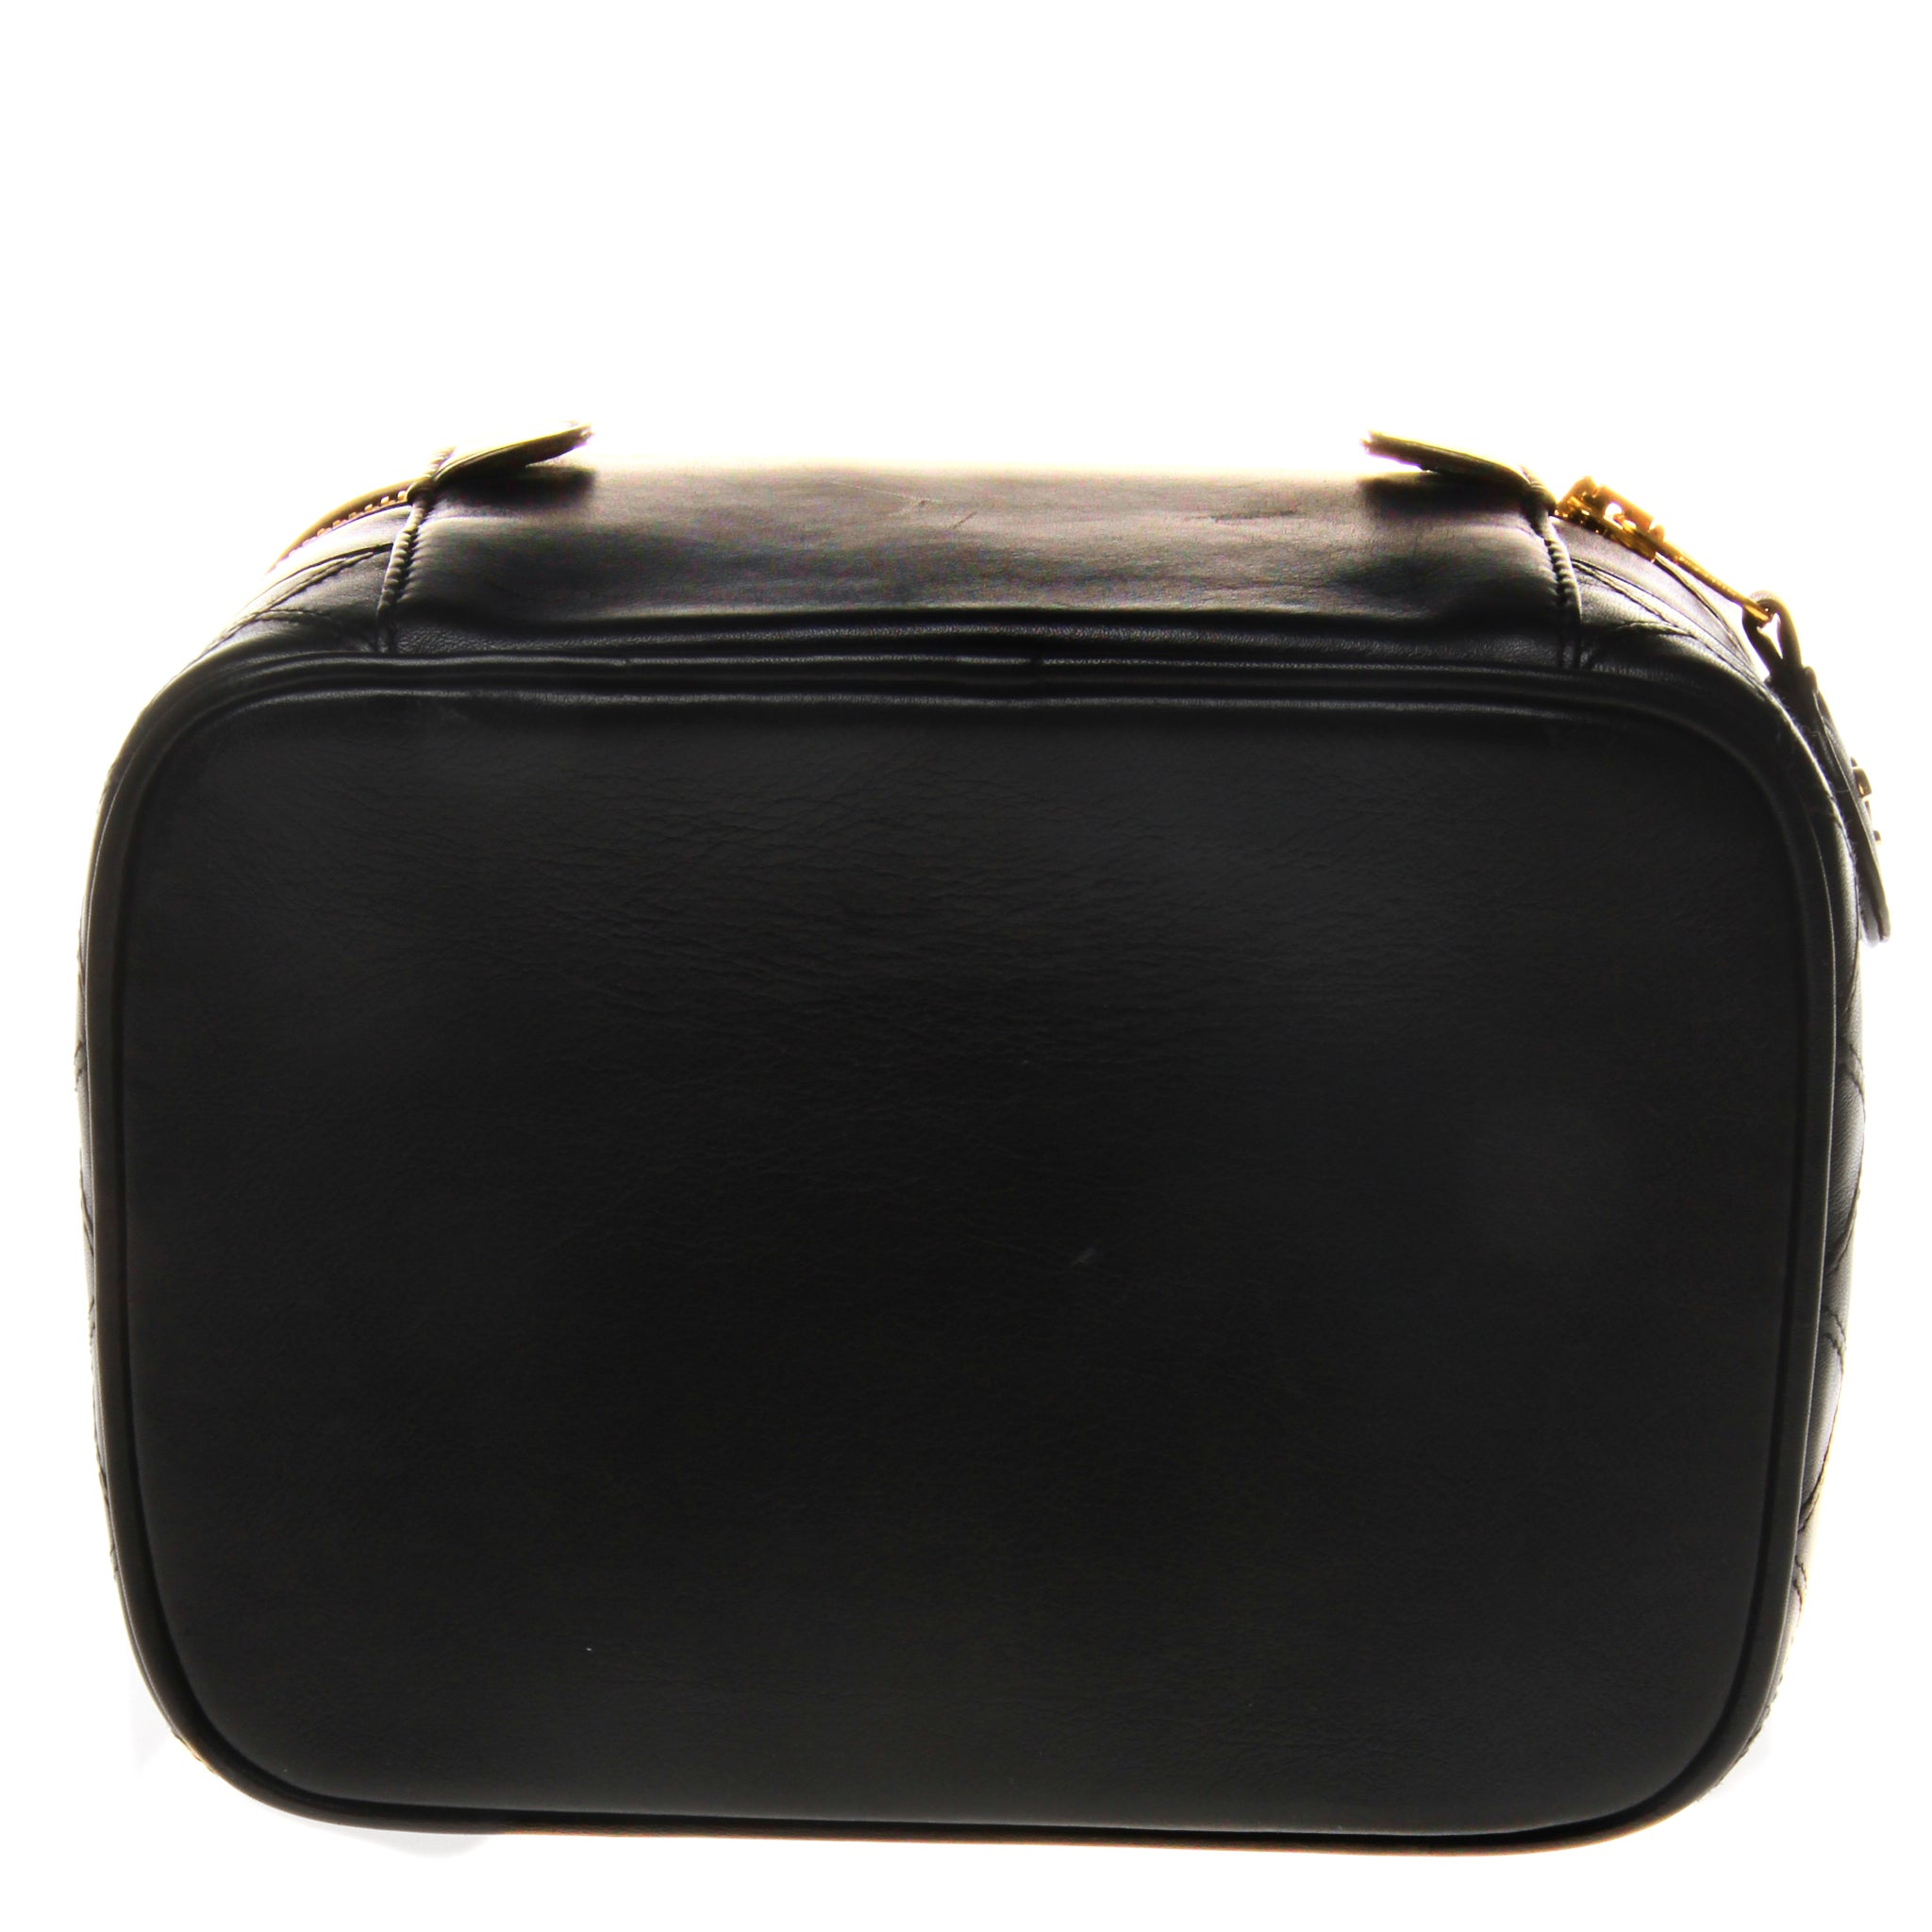 2507600fdf59 Chanel Leather Beauty Vanity Case Bag For Sale at 1stdibs